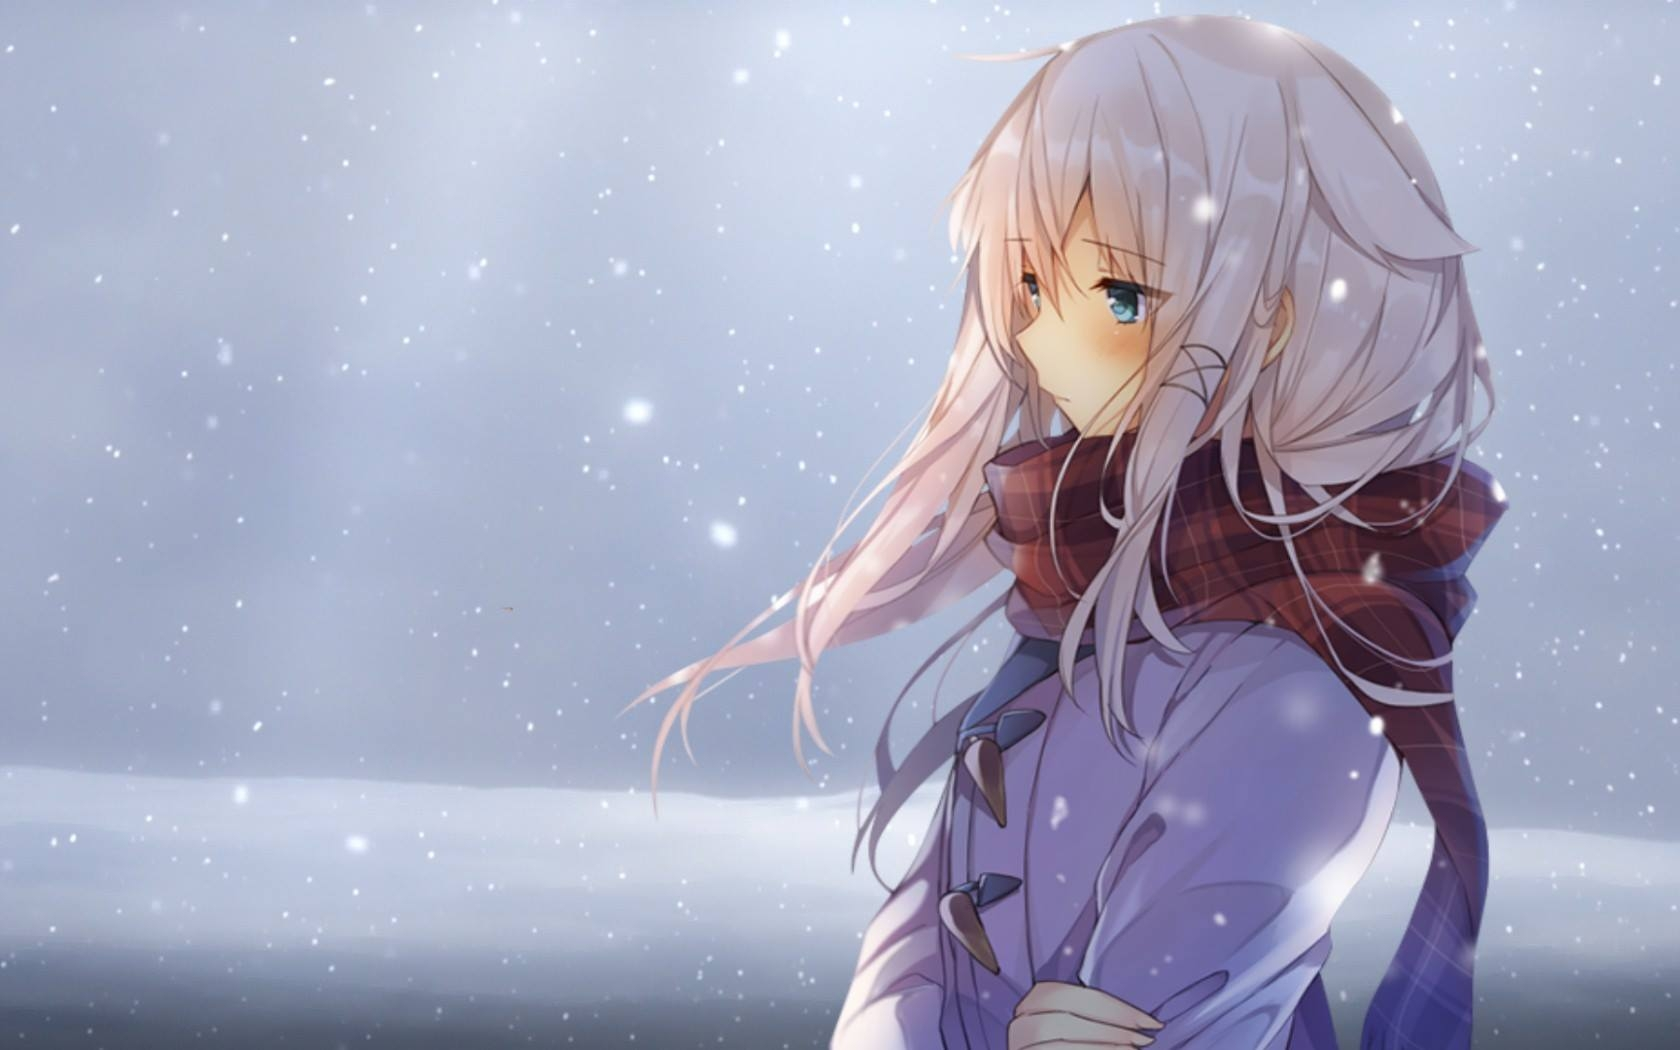 Winter, Scarf, Snow, Blue Eyes, Silver hair, One Girl